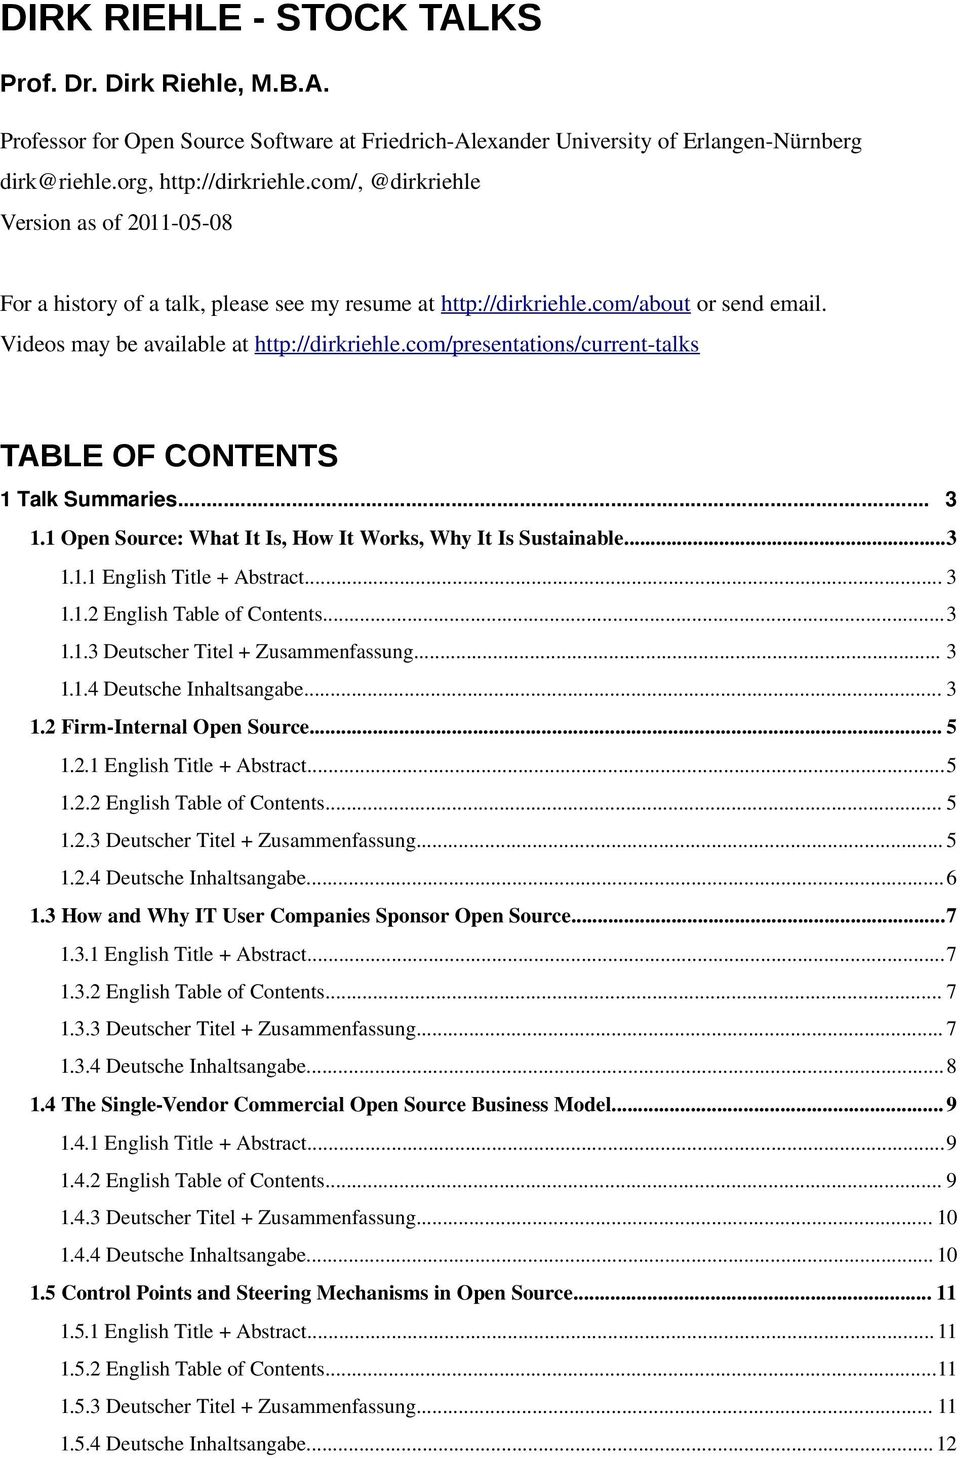 com/presentations/current-talks TABLE OF CONTENTS 1 Talk Summaries... 3 1.1 Open Source: What It Is, How It Works, Why It Is Sustainable...3 1.1.1 English Title + Abstract... 3 1.1.2 English Table of Contents.